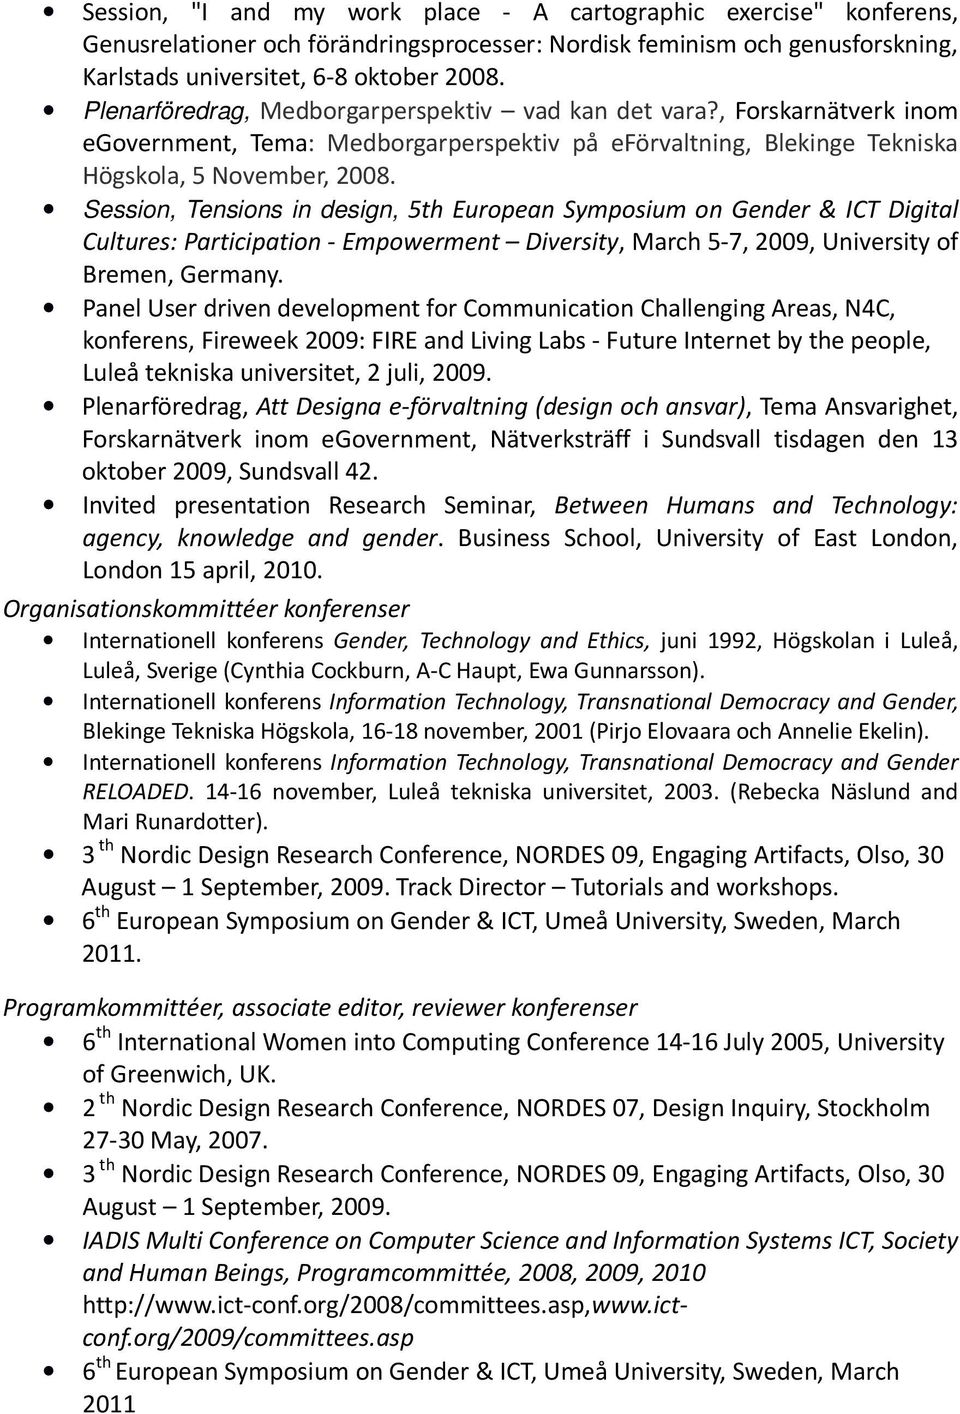 Session, Tensions in design, 5th European Symposium on Gender & ICT Digital Cultures: Participation - Empowerment Diversity, March 5-7, 2009, University of Bremen, Germany.